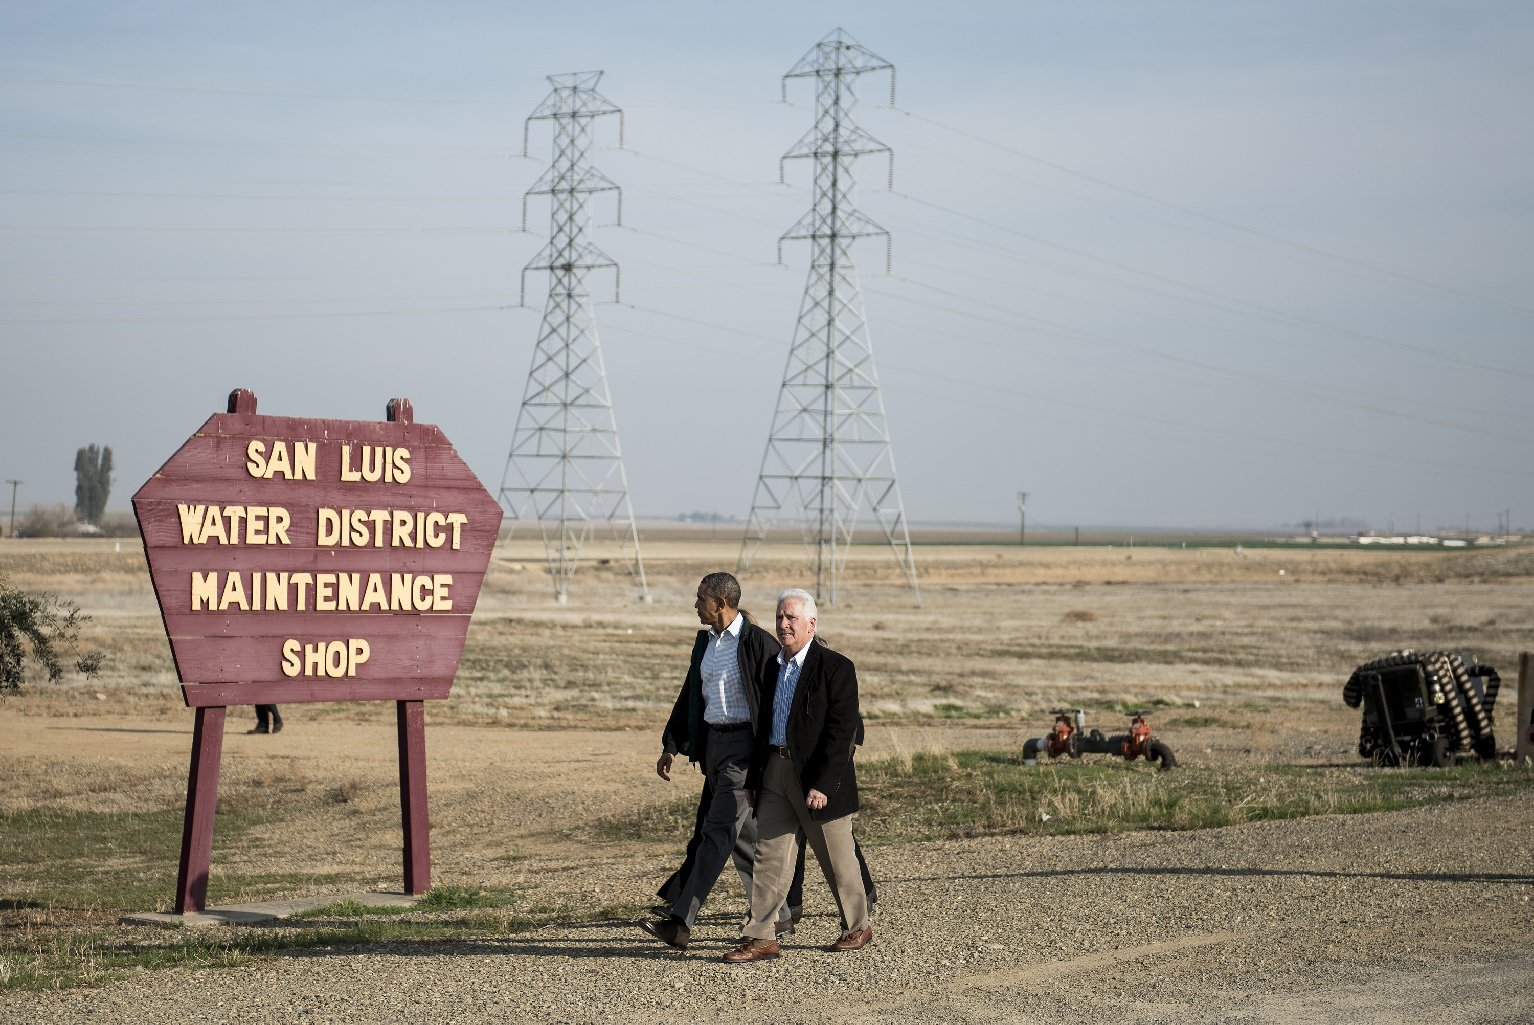 US President Barack Obama (L) and Rep. Jim Costa (D-CA) walk to a meeting with locals at the San Luis Water Facility February 14, 2014 in Firebaugh, California. (Brendan Smialowski/AFP/Getty Images)